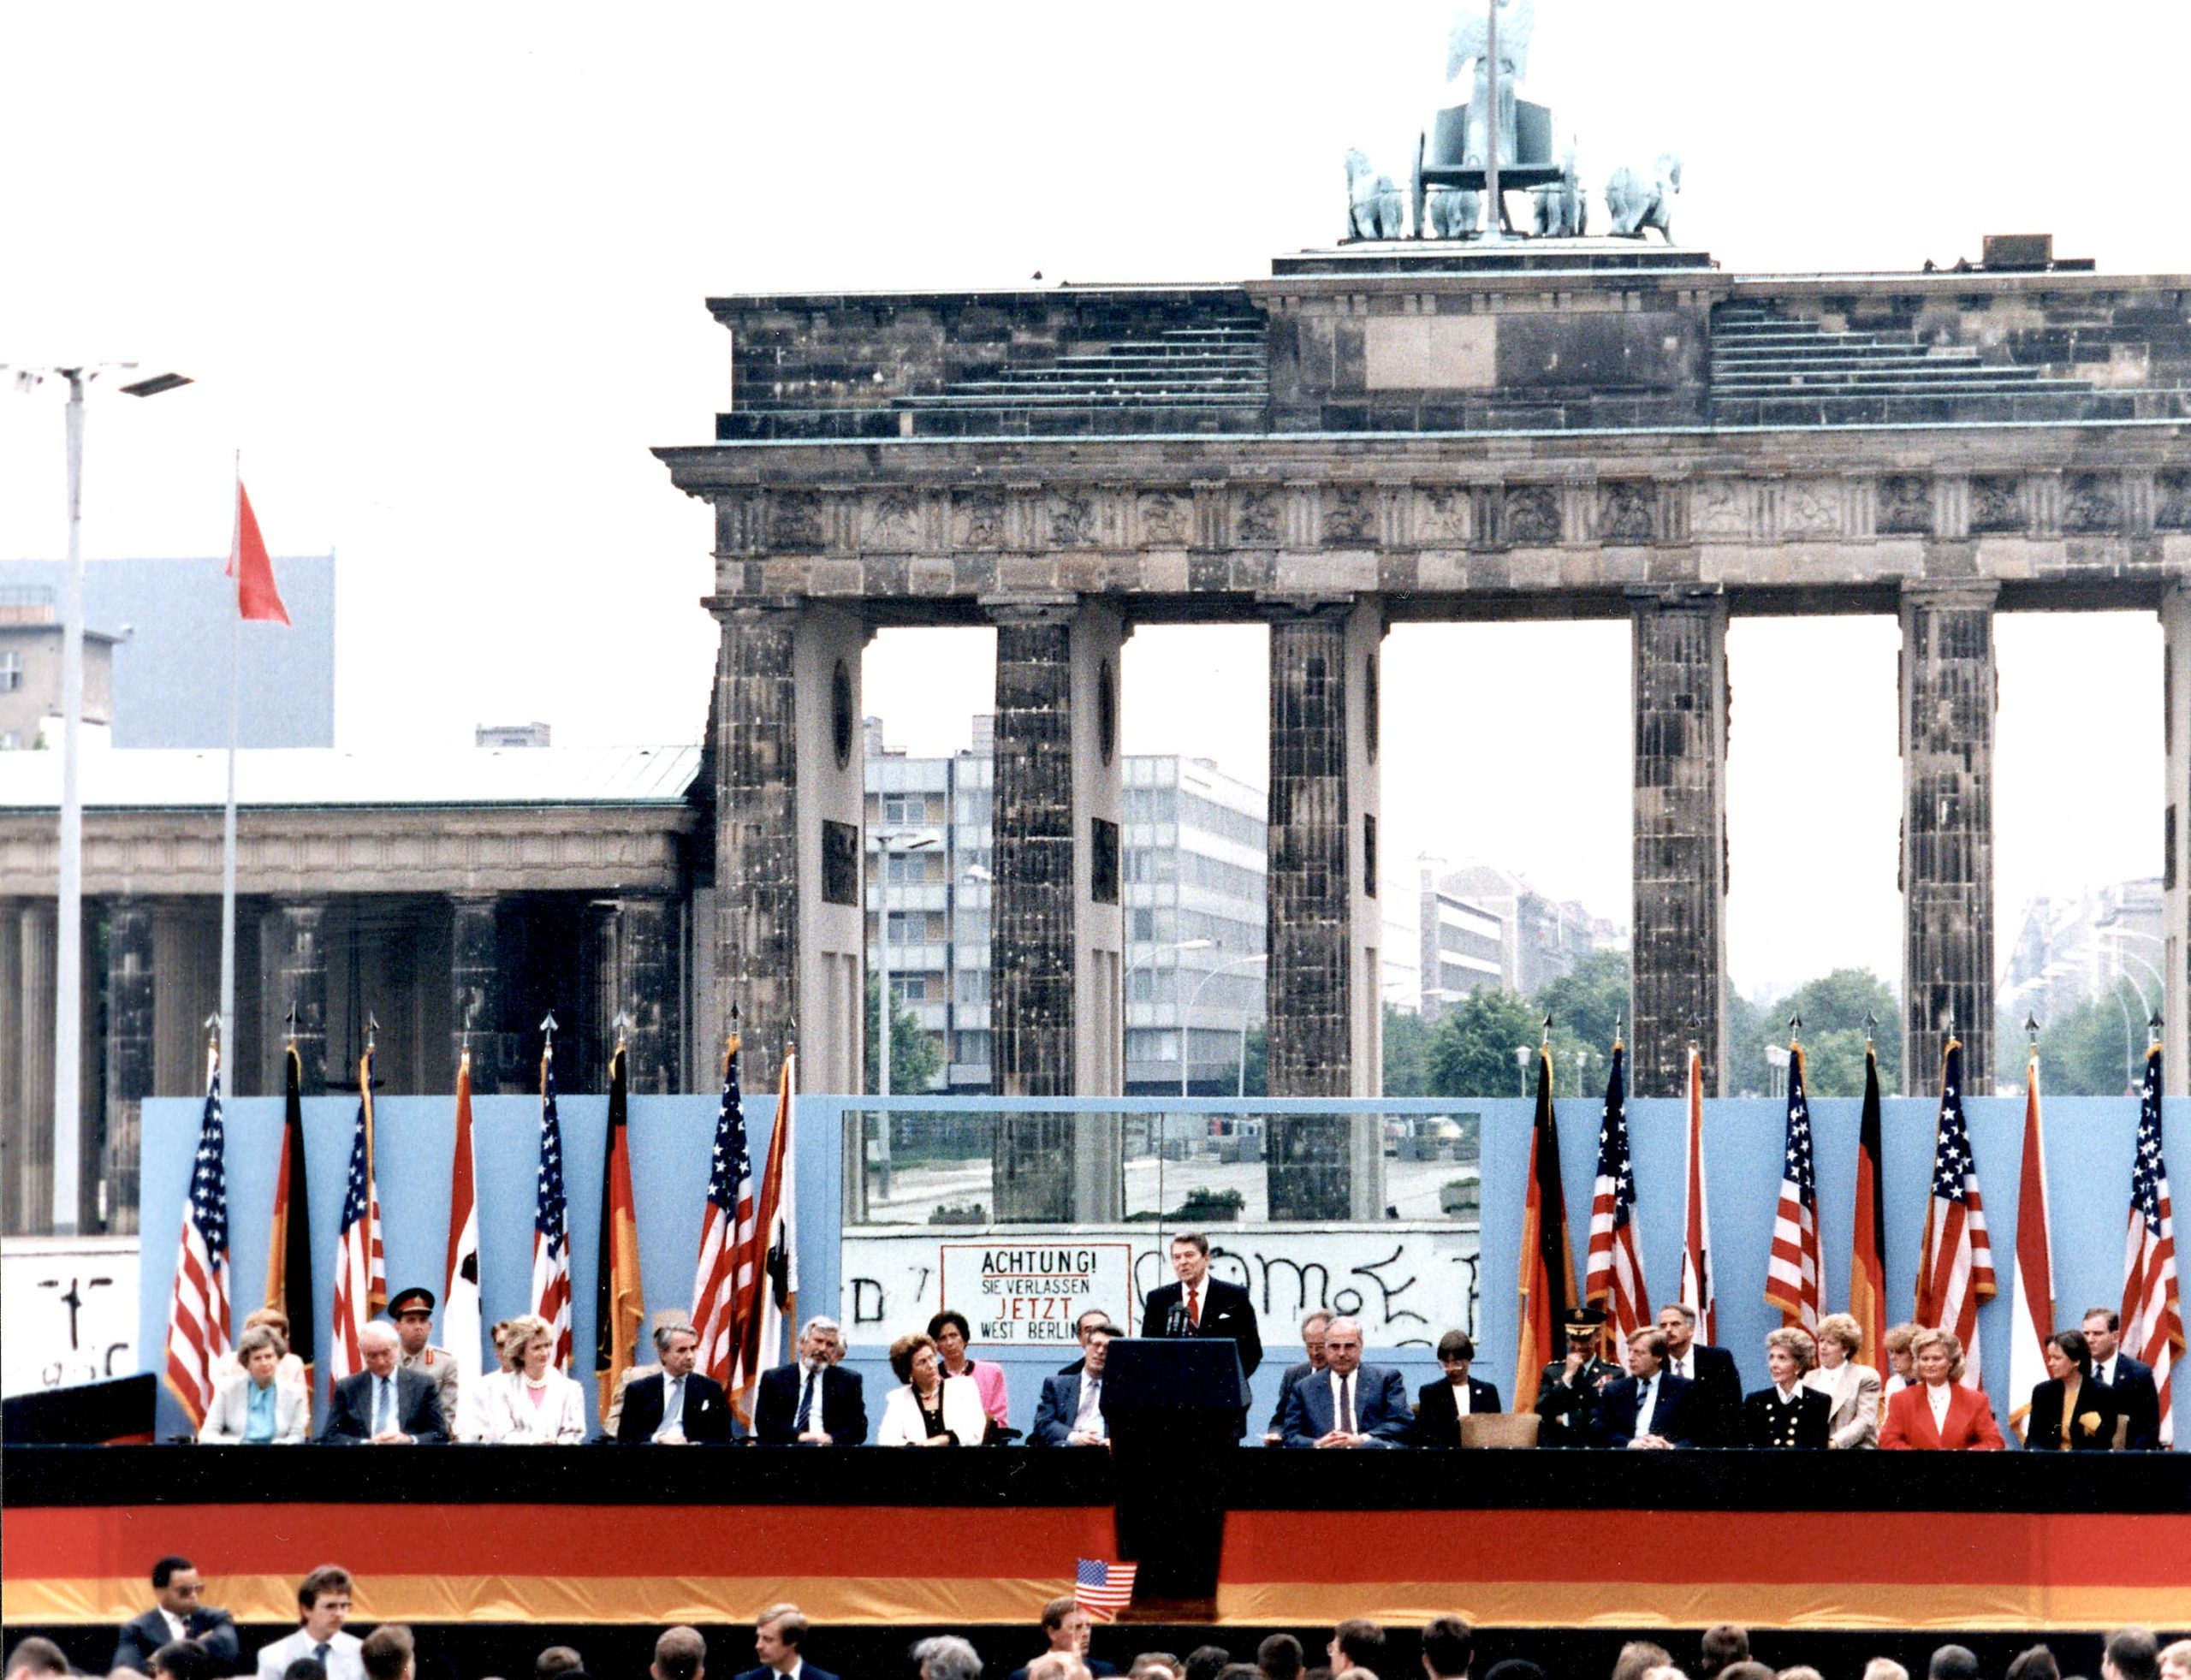 Reagan speech at the Berlin Wall